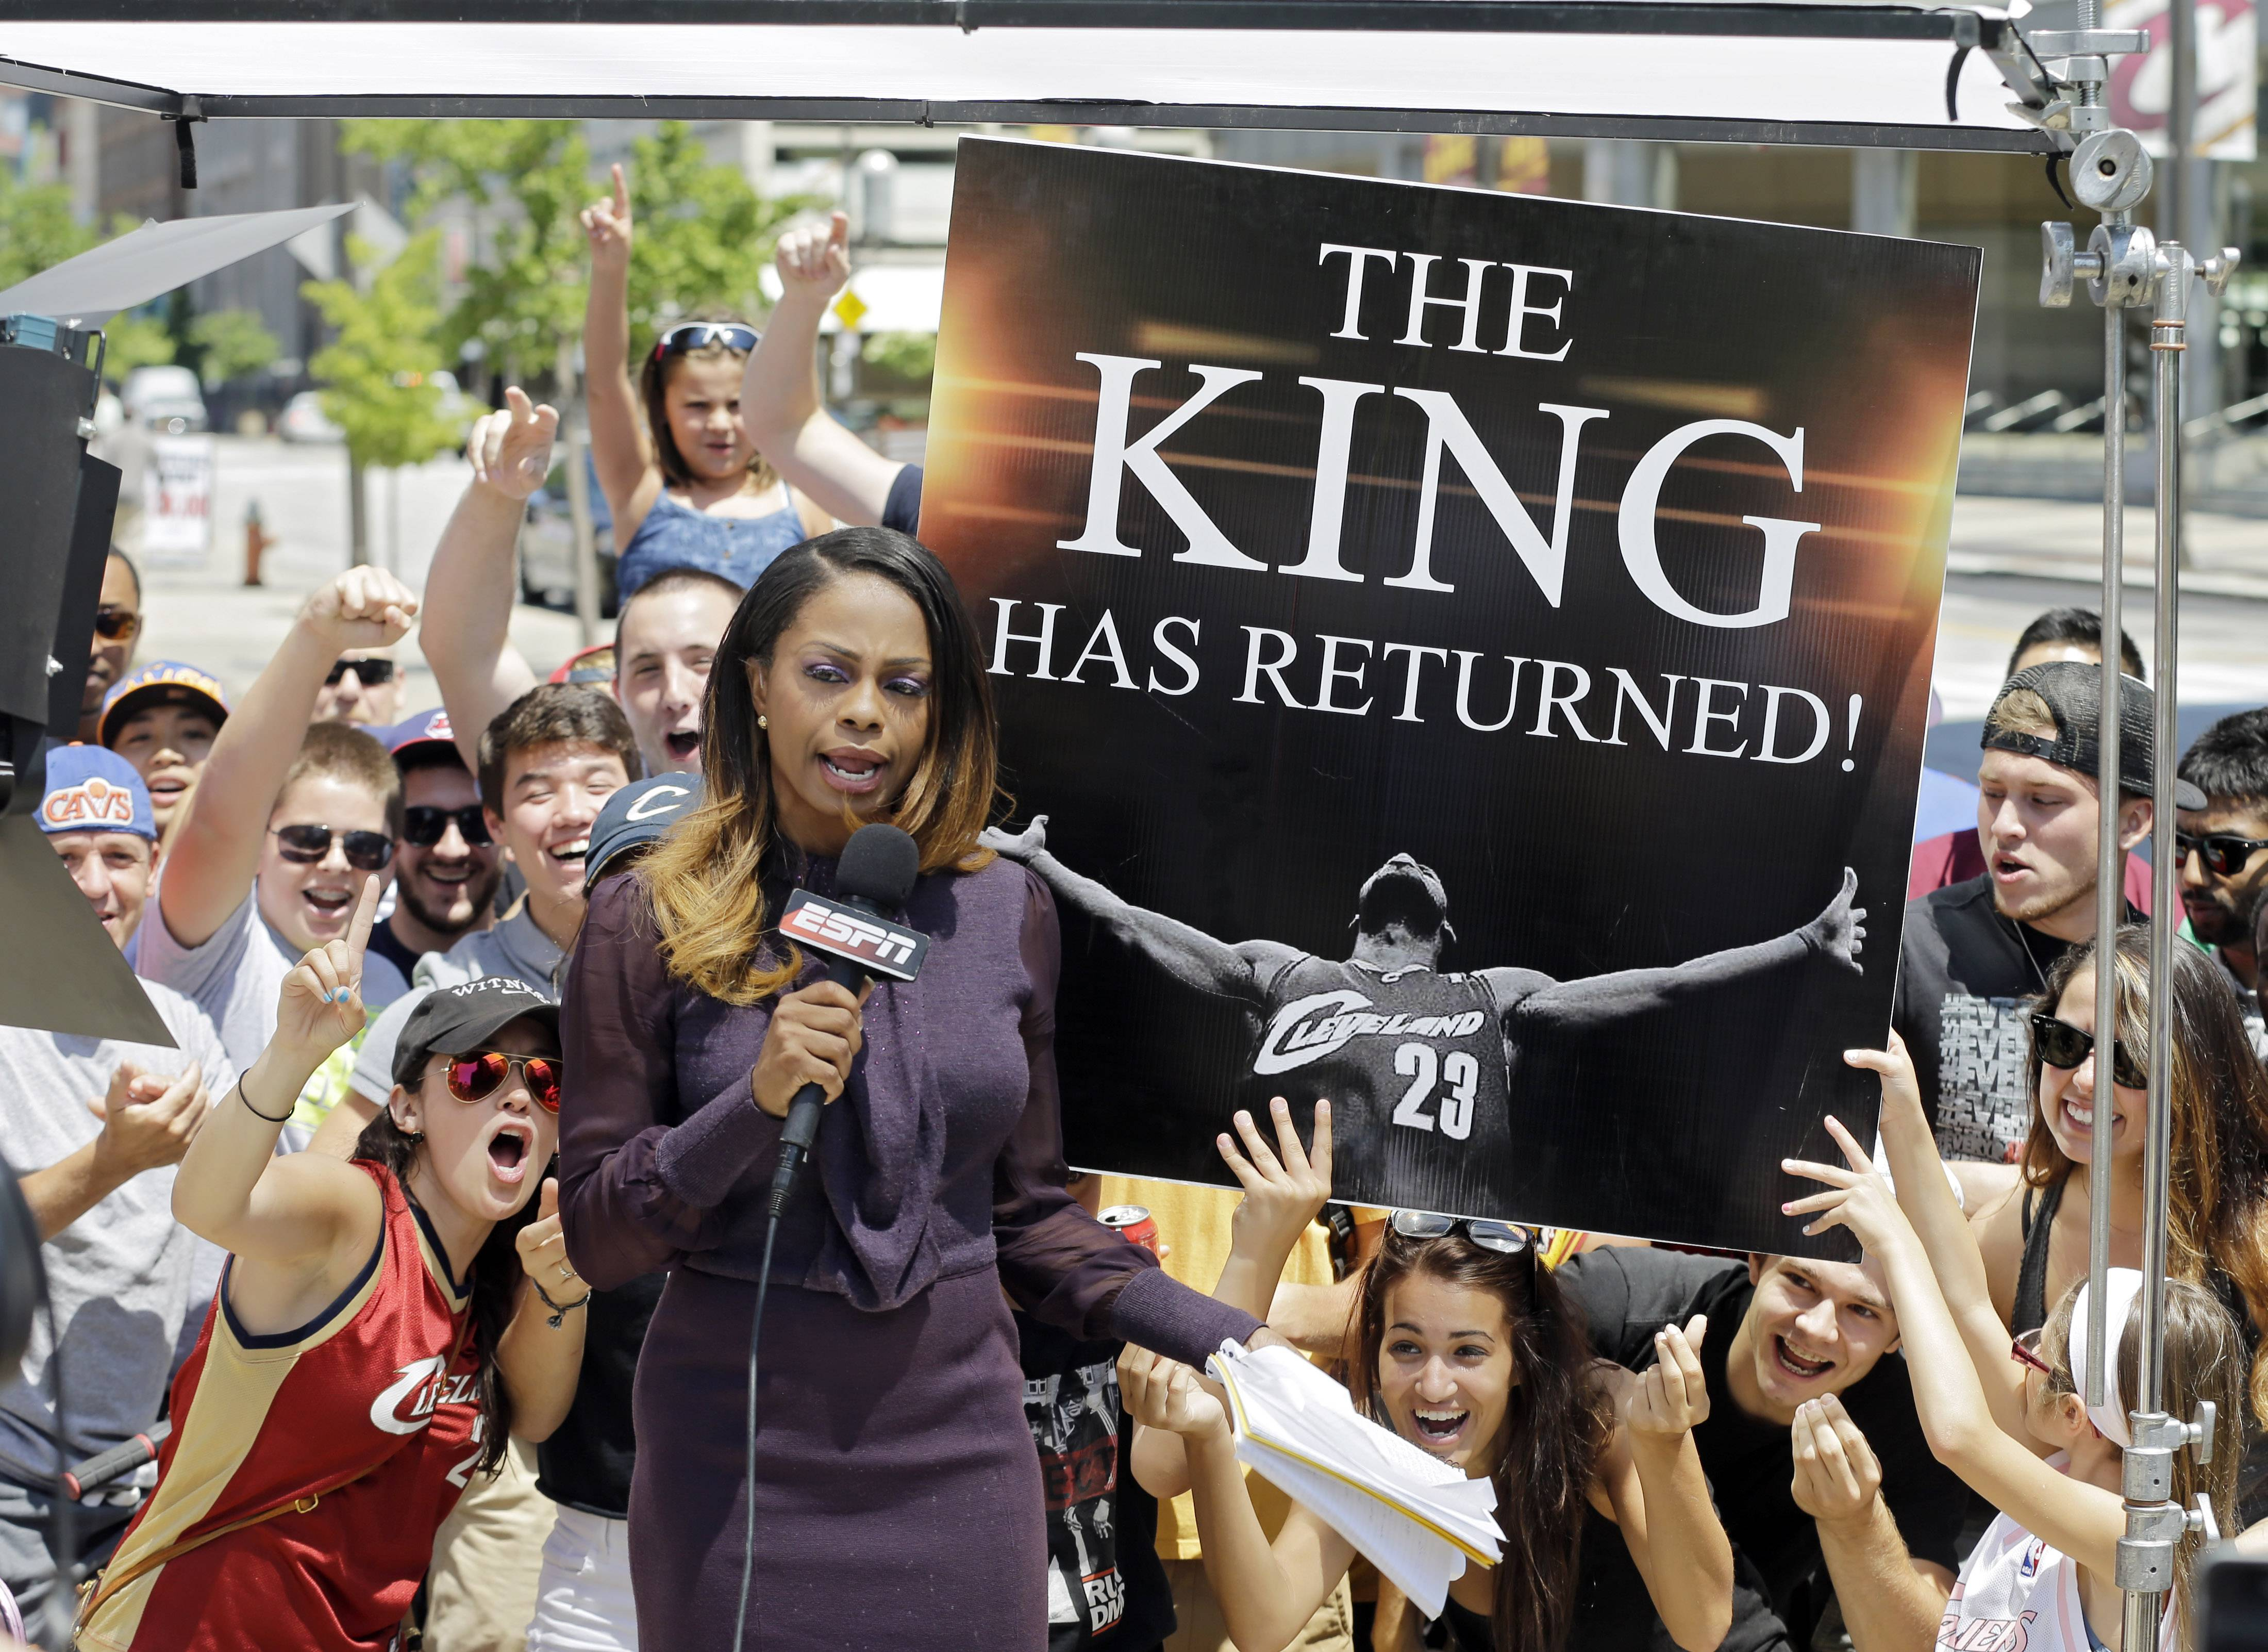 Fans whoop it up behind an ESPN reporter outside Quicken Loans Arena in Cleveland after NBA star LeBron James announced he would return to the Cleveland Cavaliers.